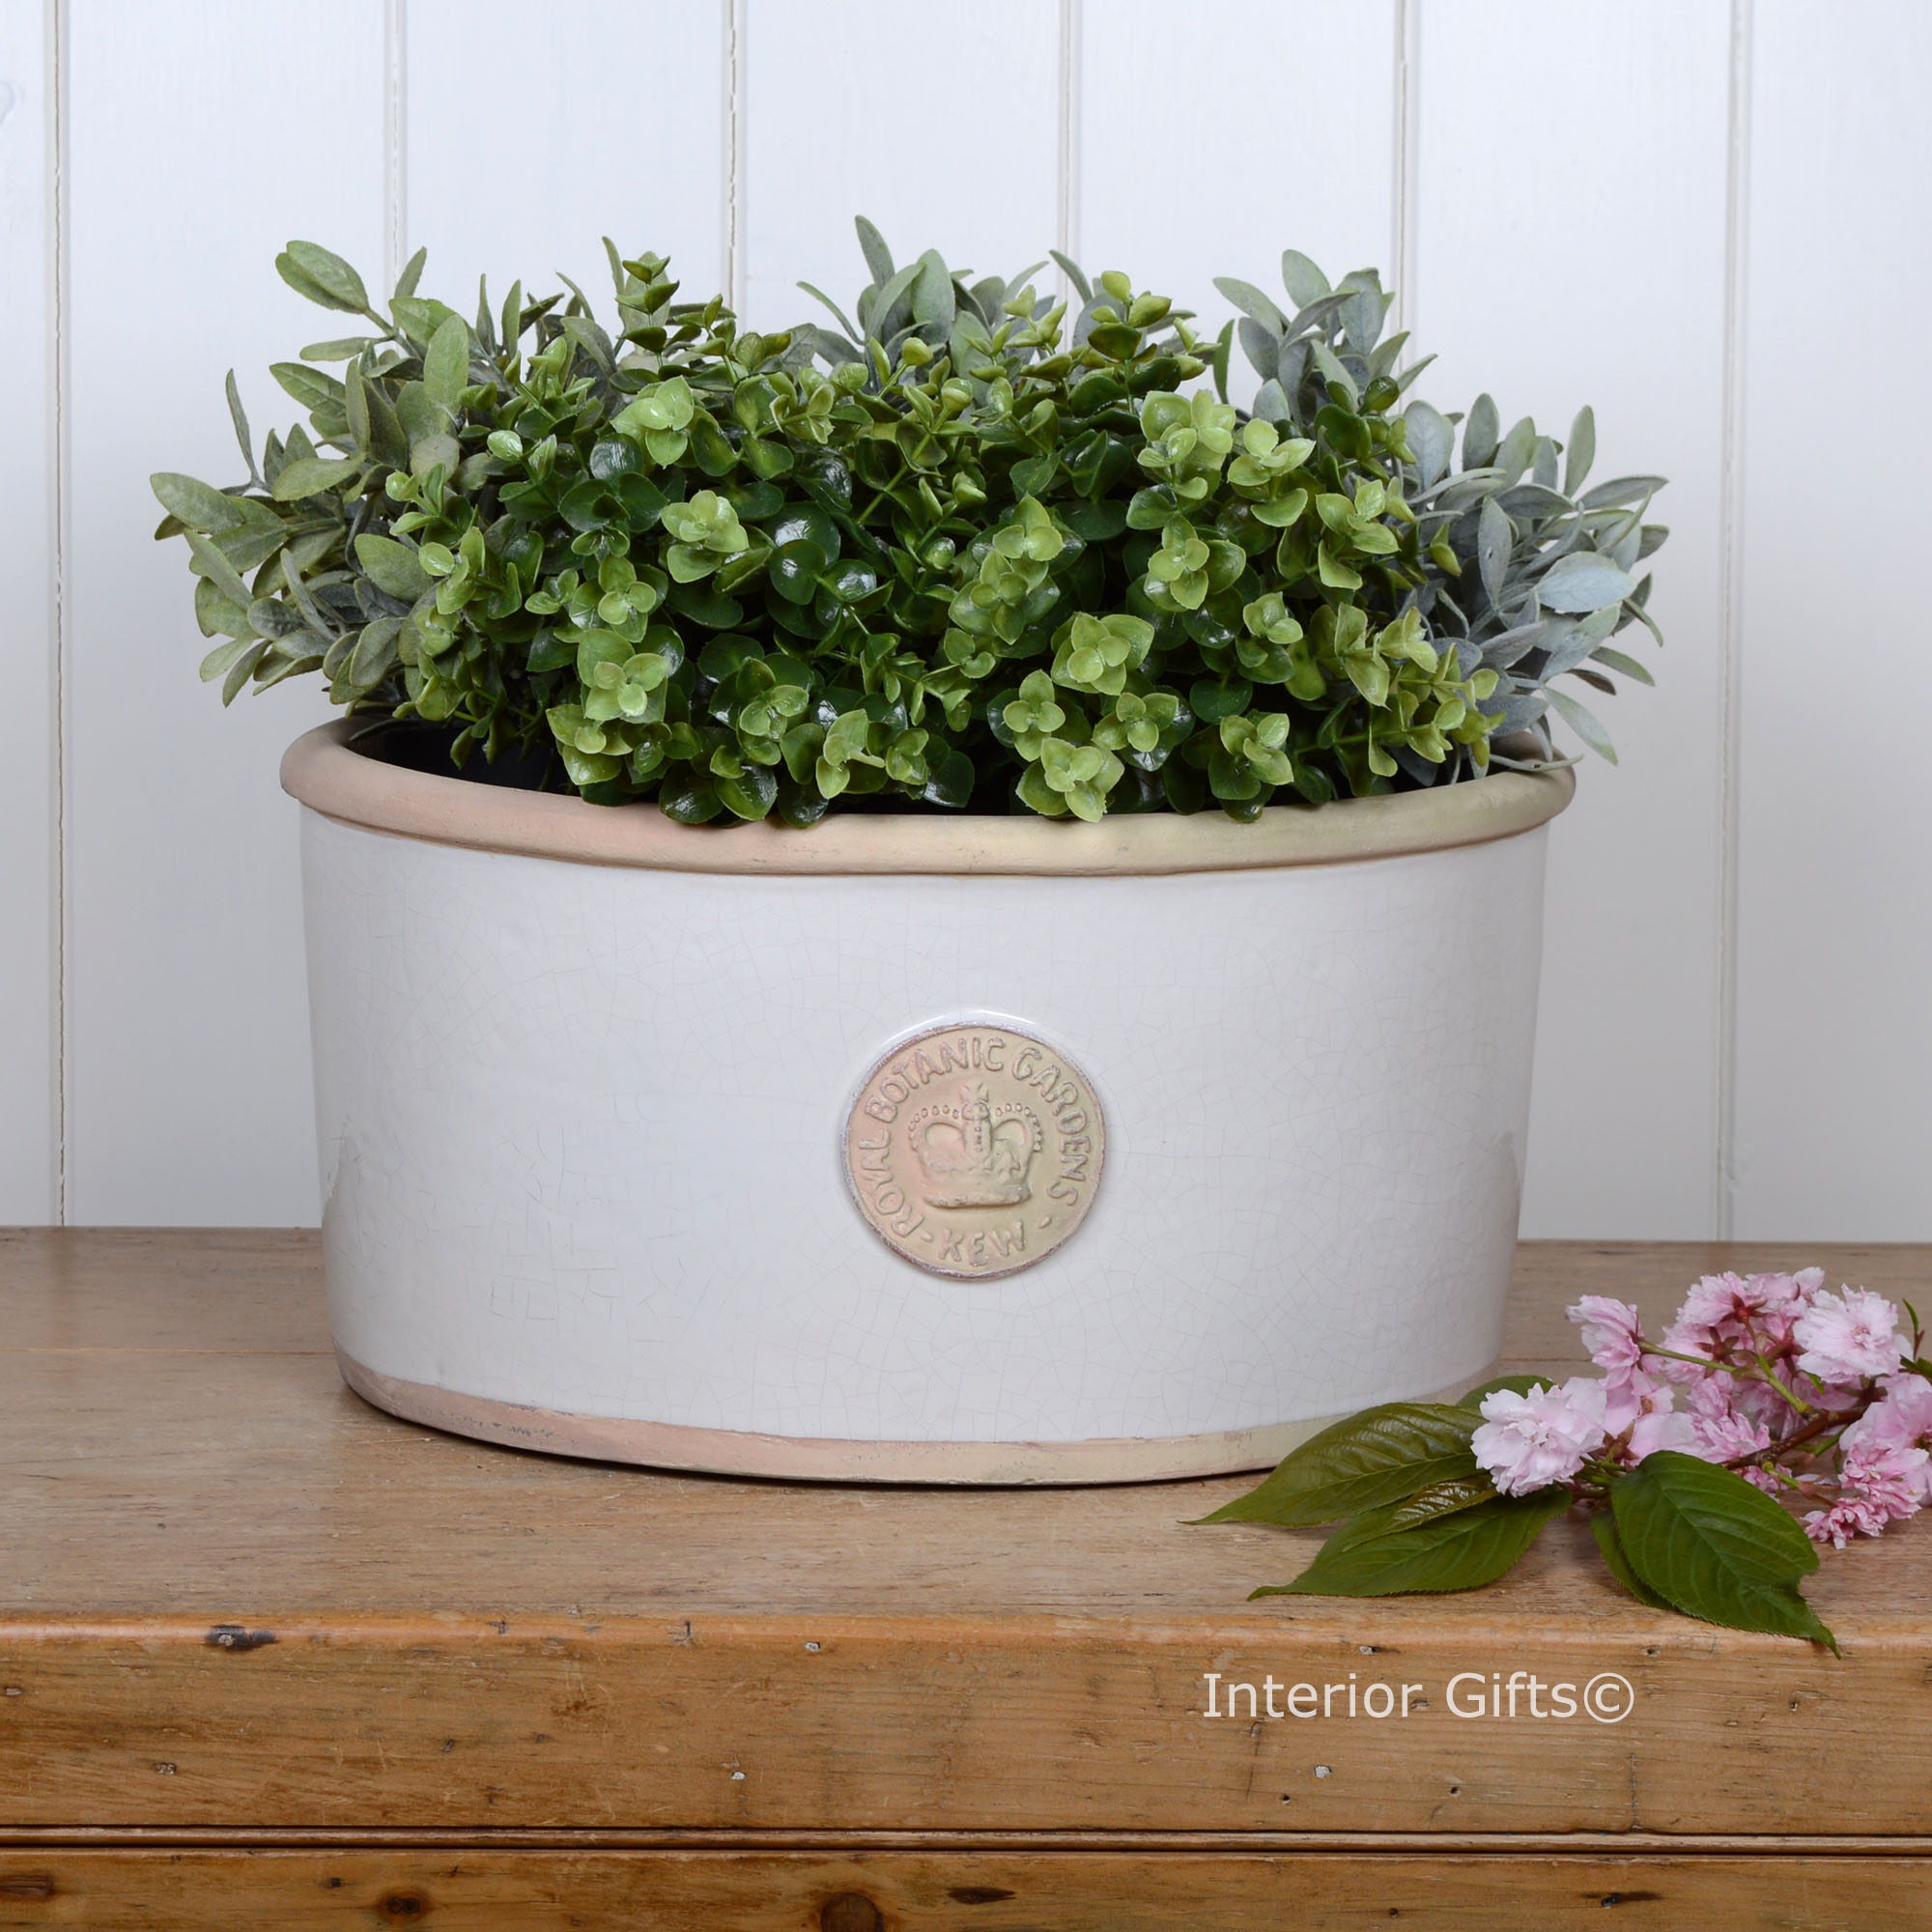 Kew Oval Plant Pot